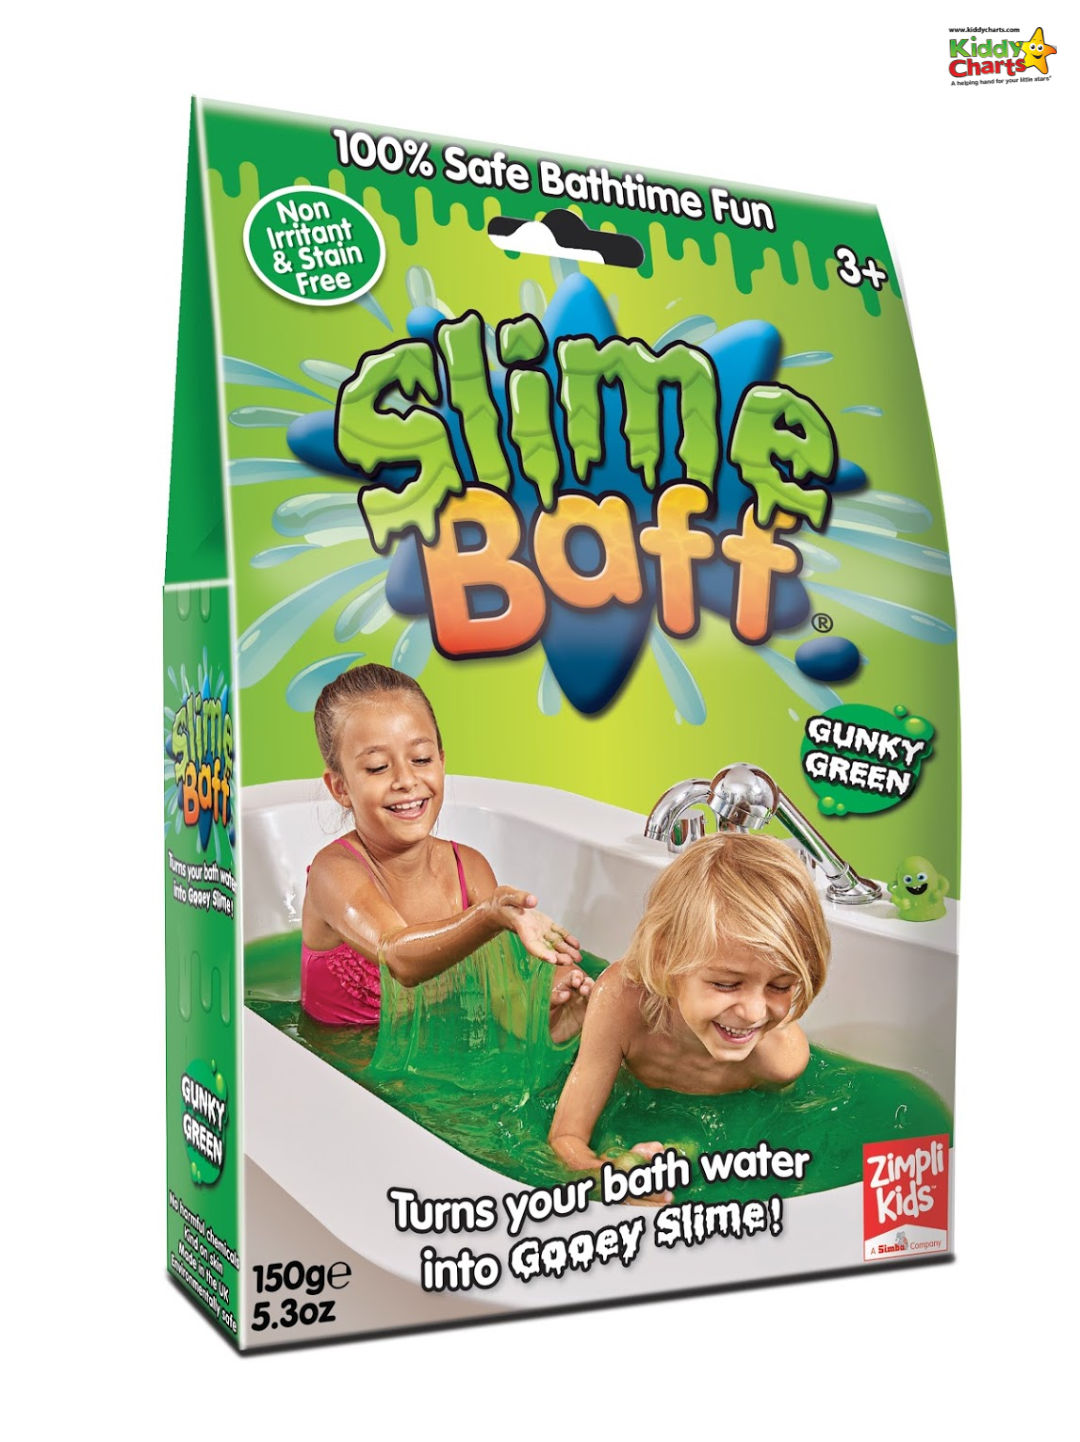 Slime baff - boredom busters gift guide